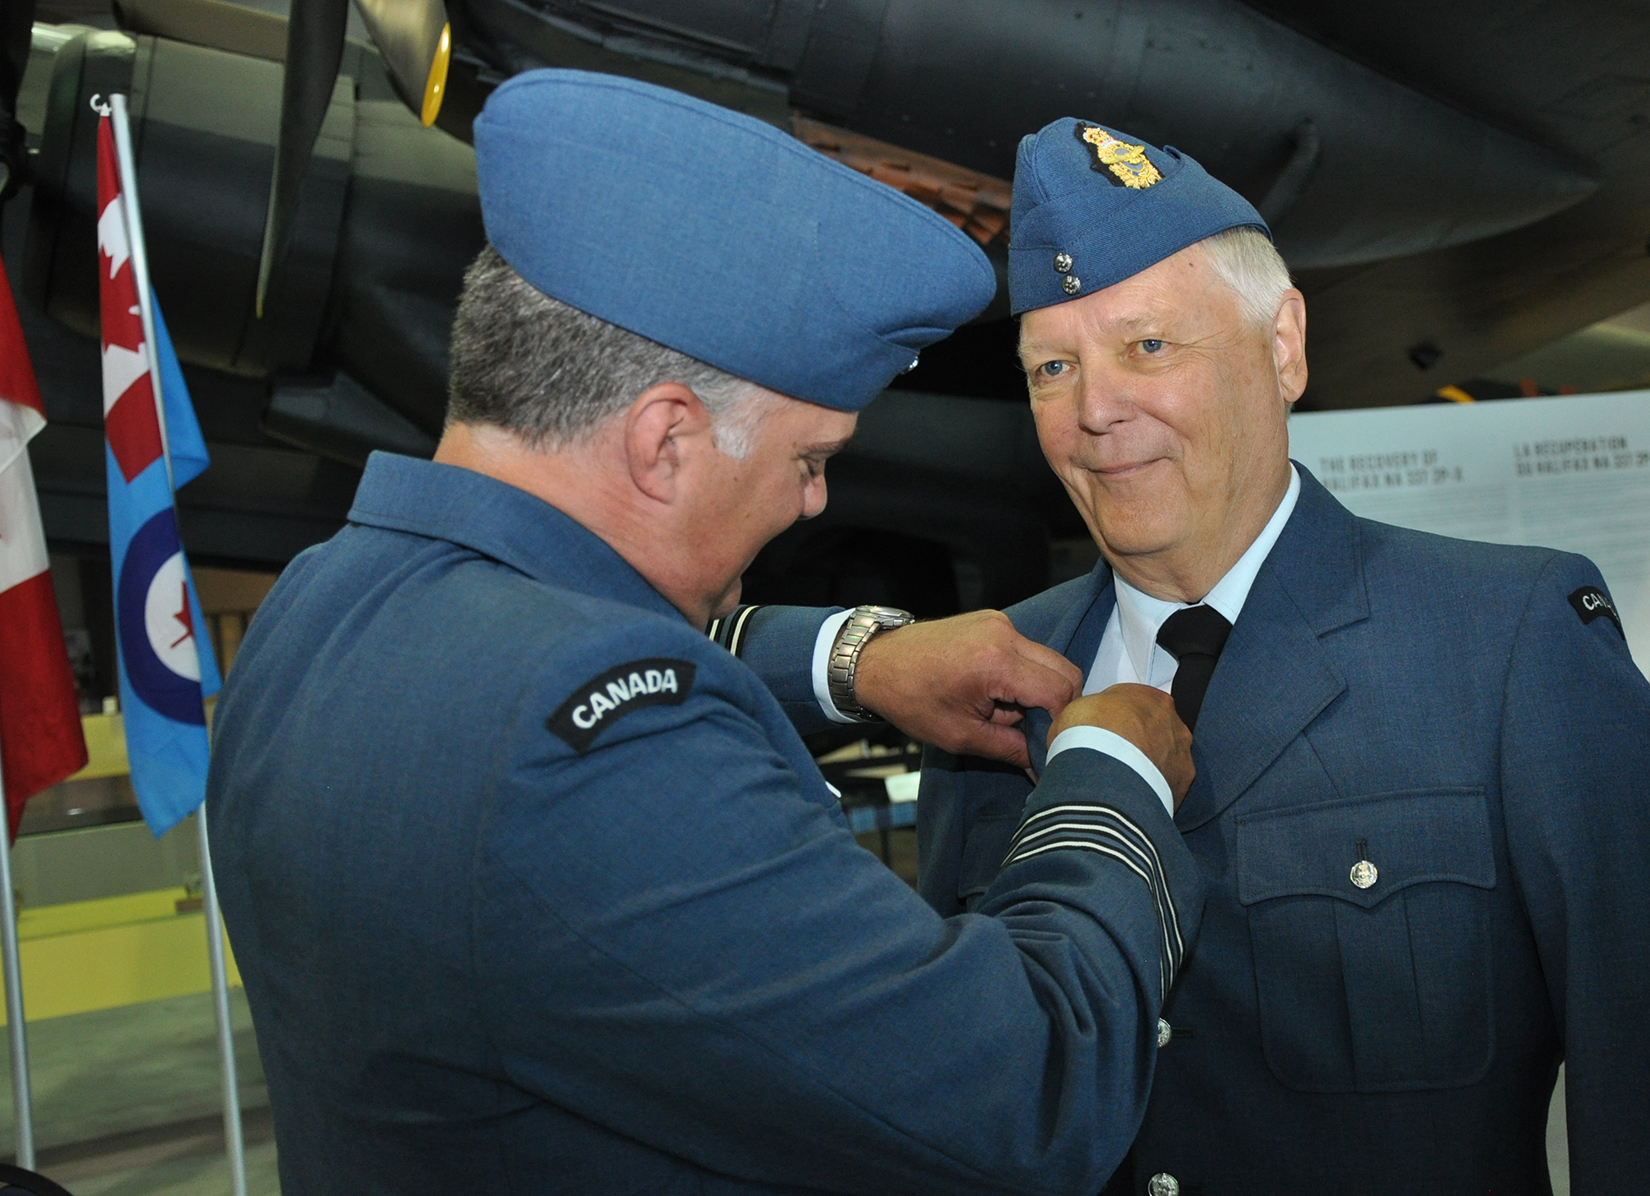 A man in an RCAF uniform pins a lapel pin on another man's uniform.